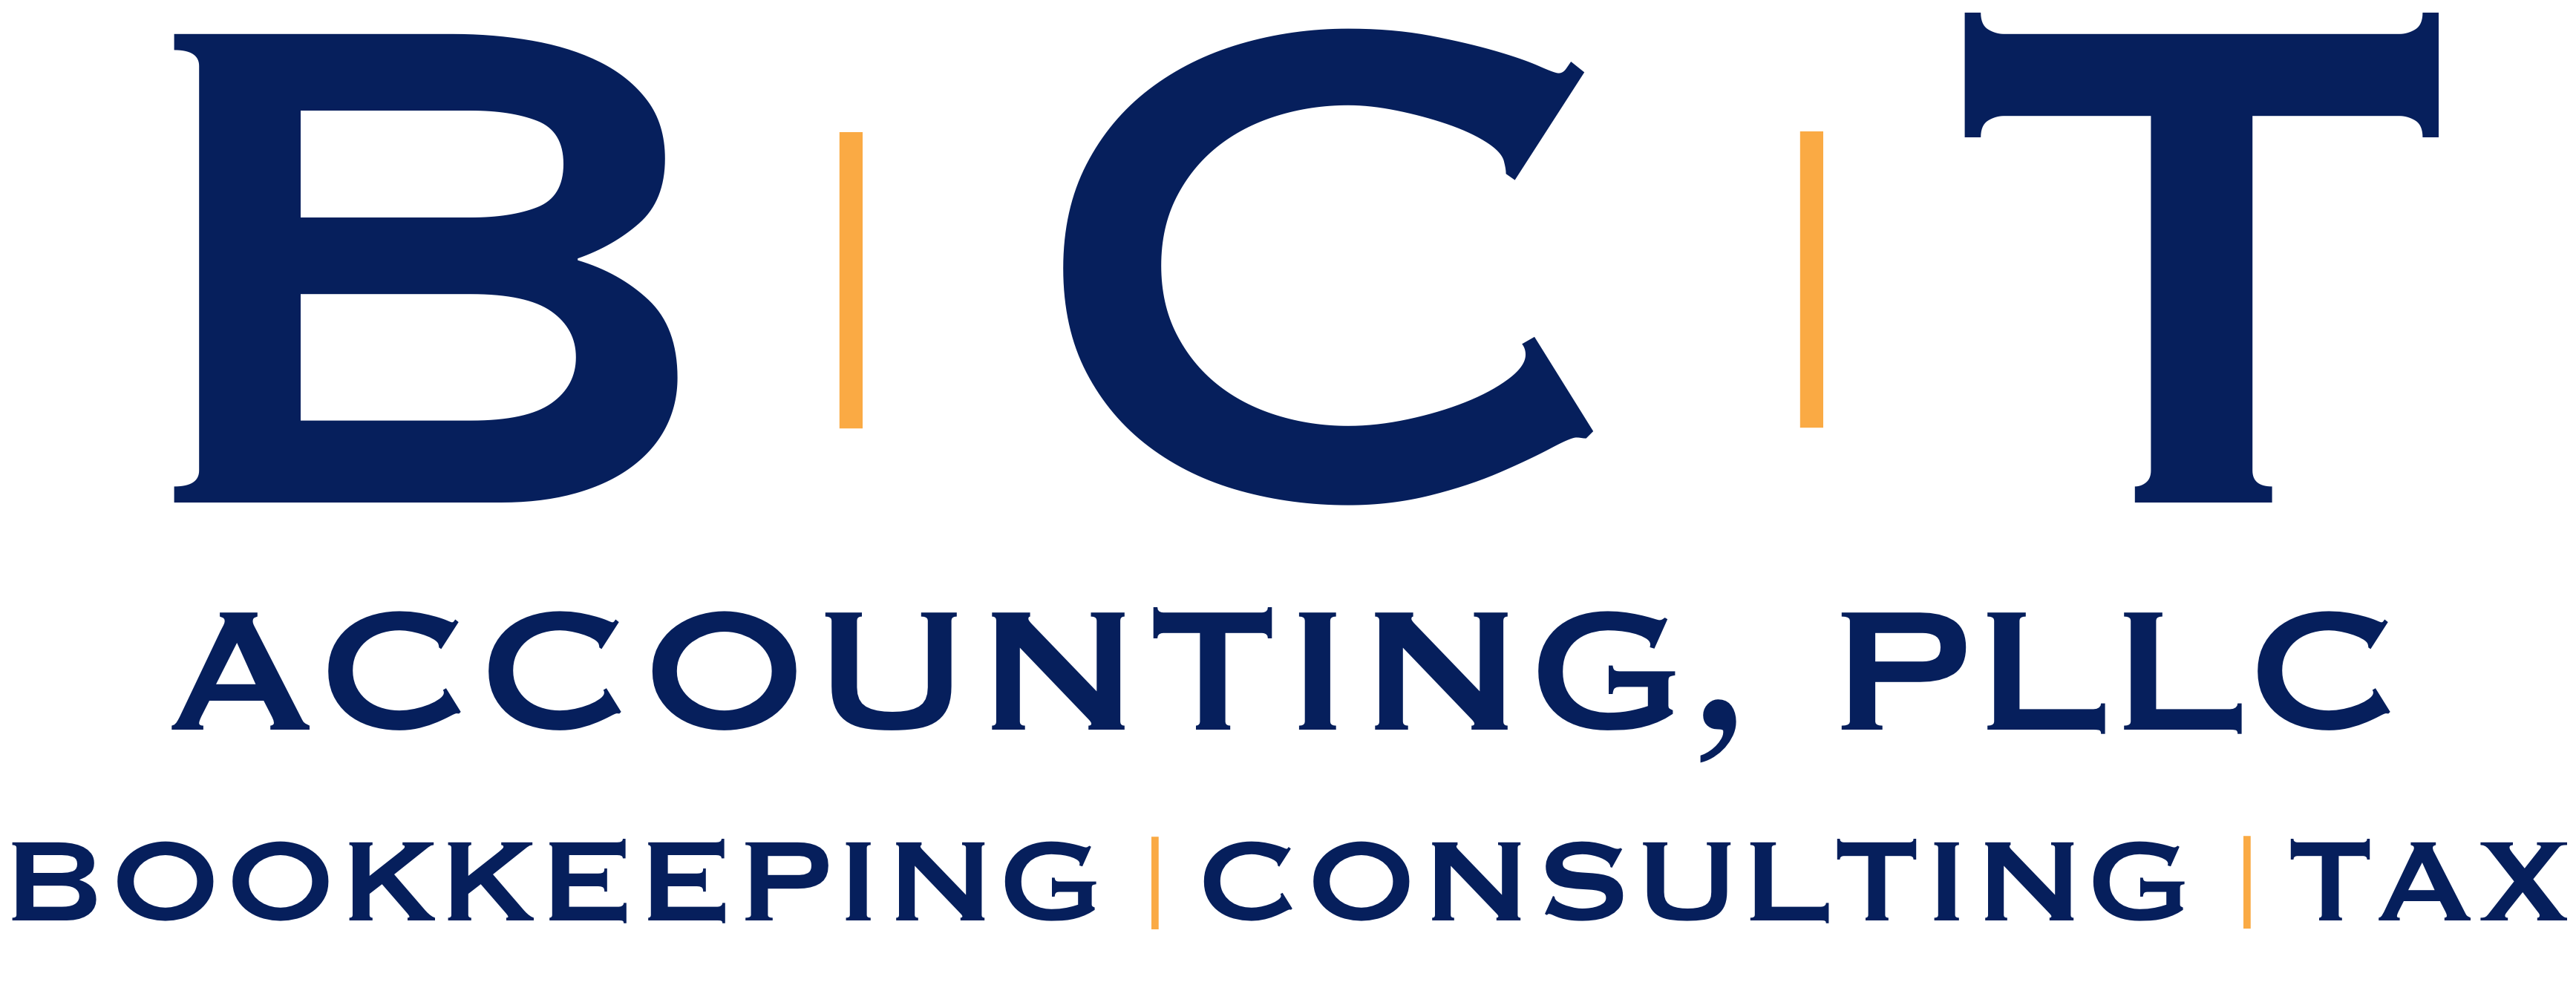 BCT Accounting, PLLC